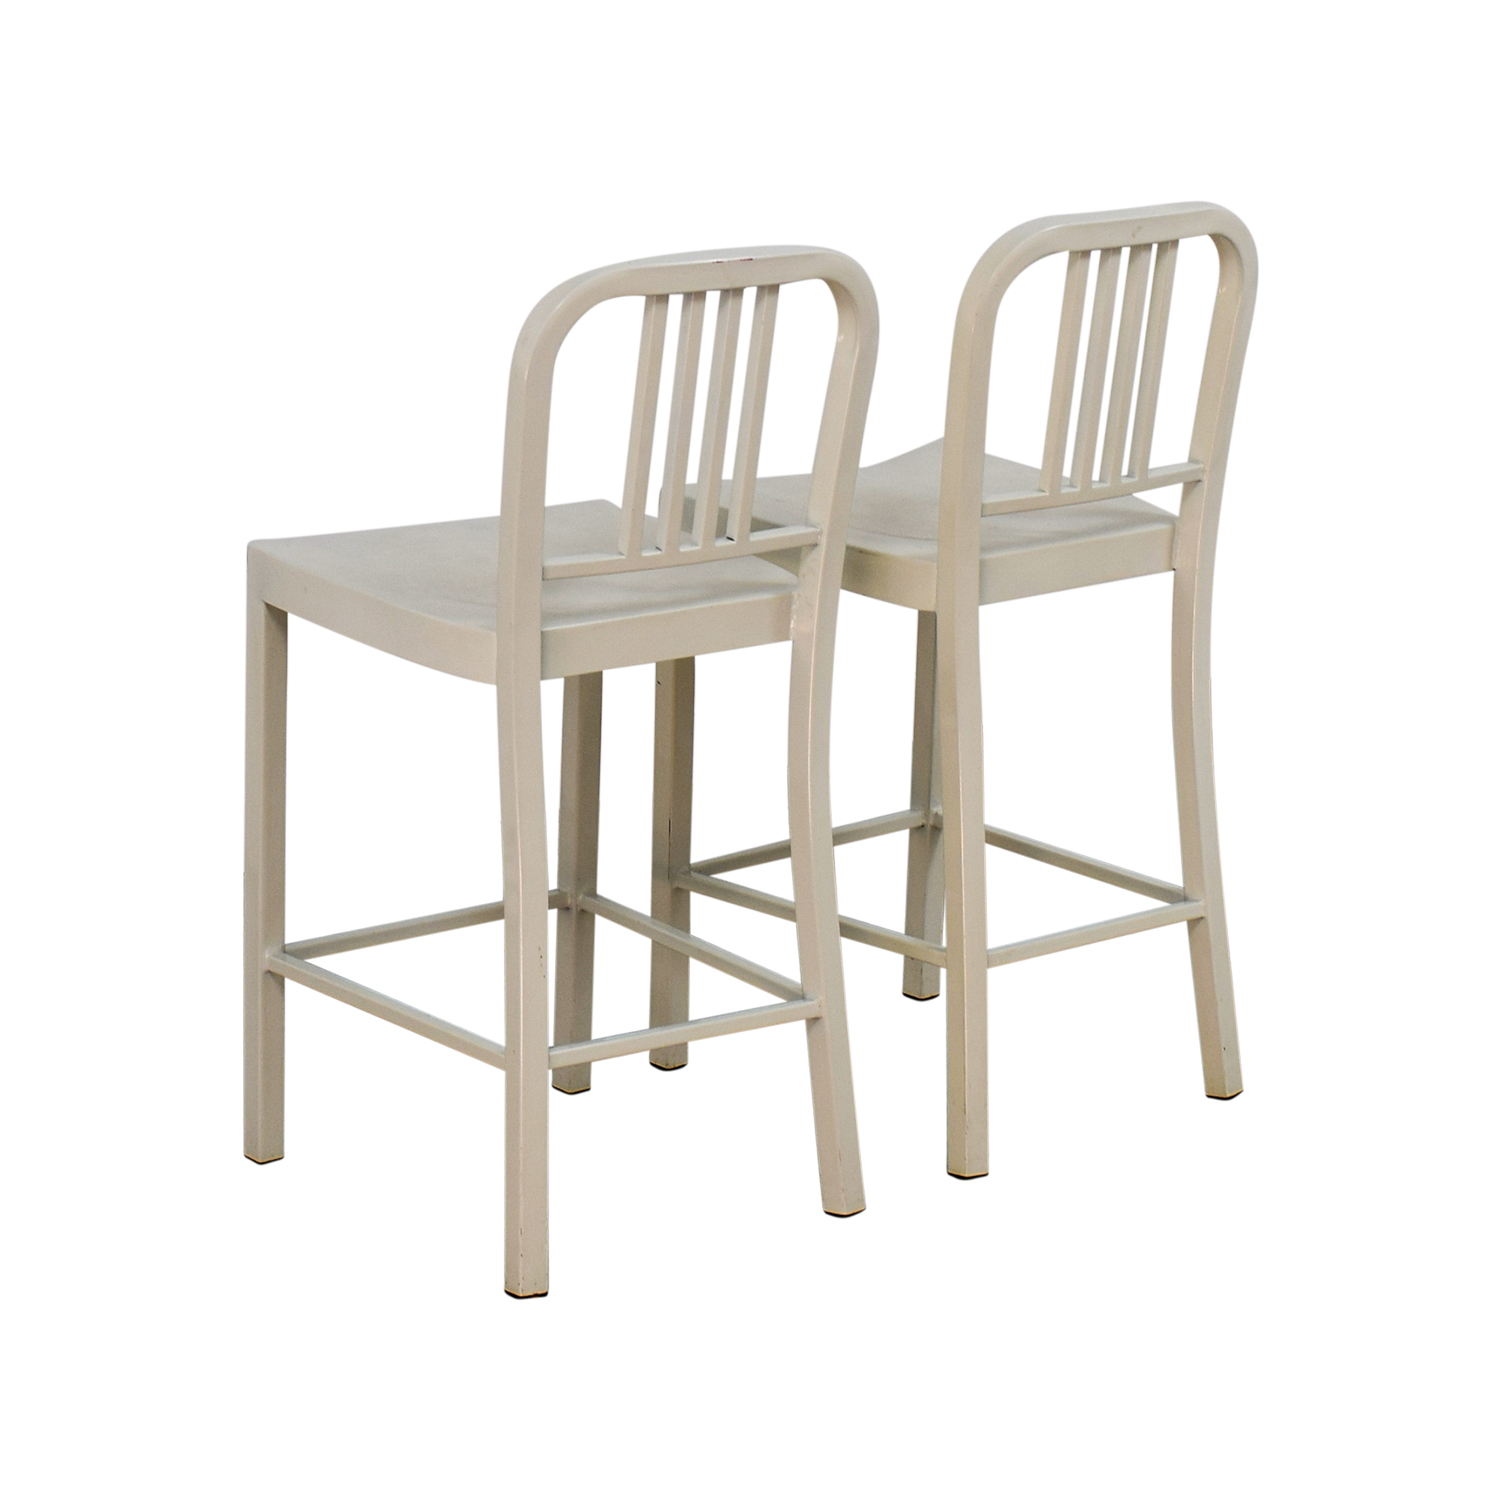 White Metal Chair 80 Off White Metal Chairs Chairs